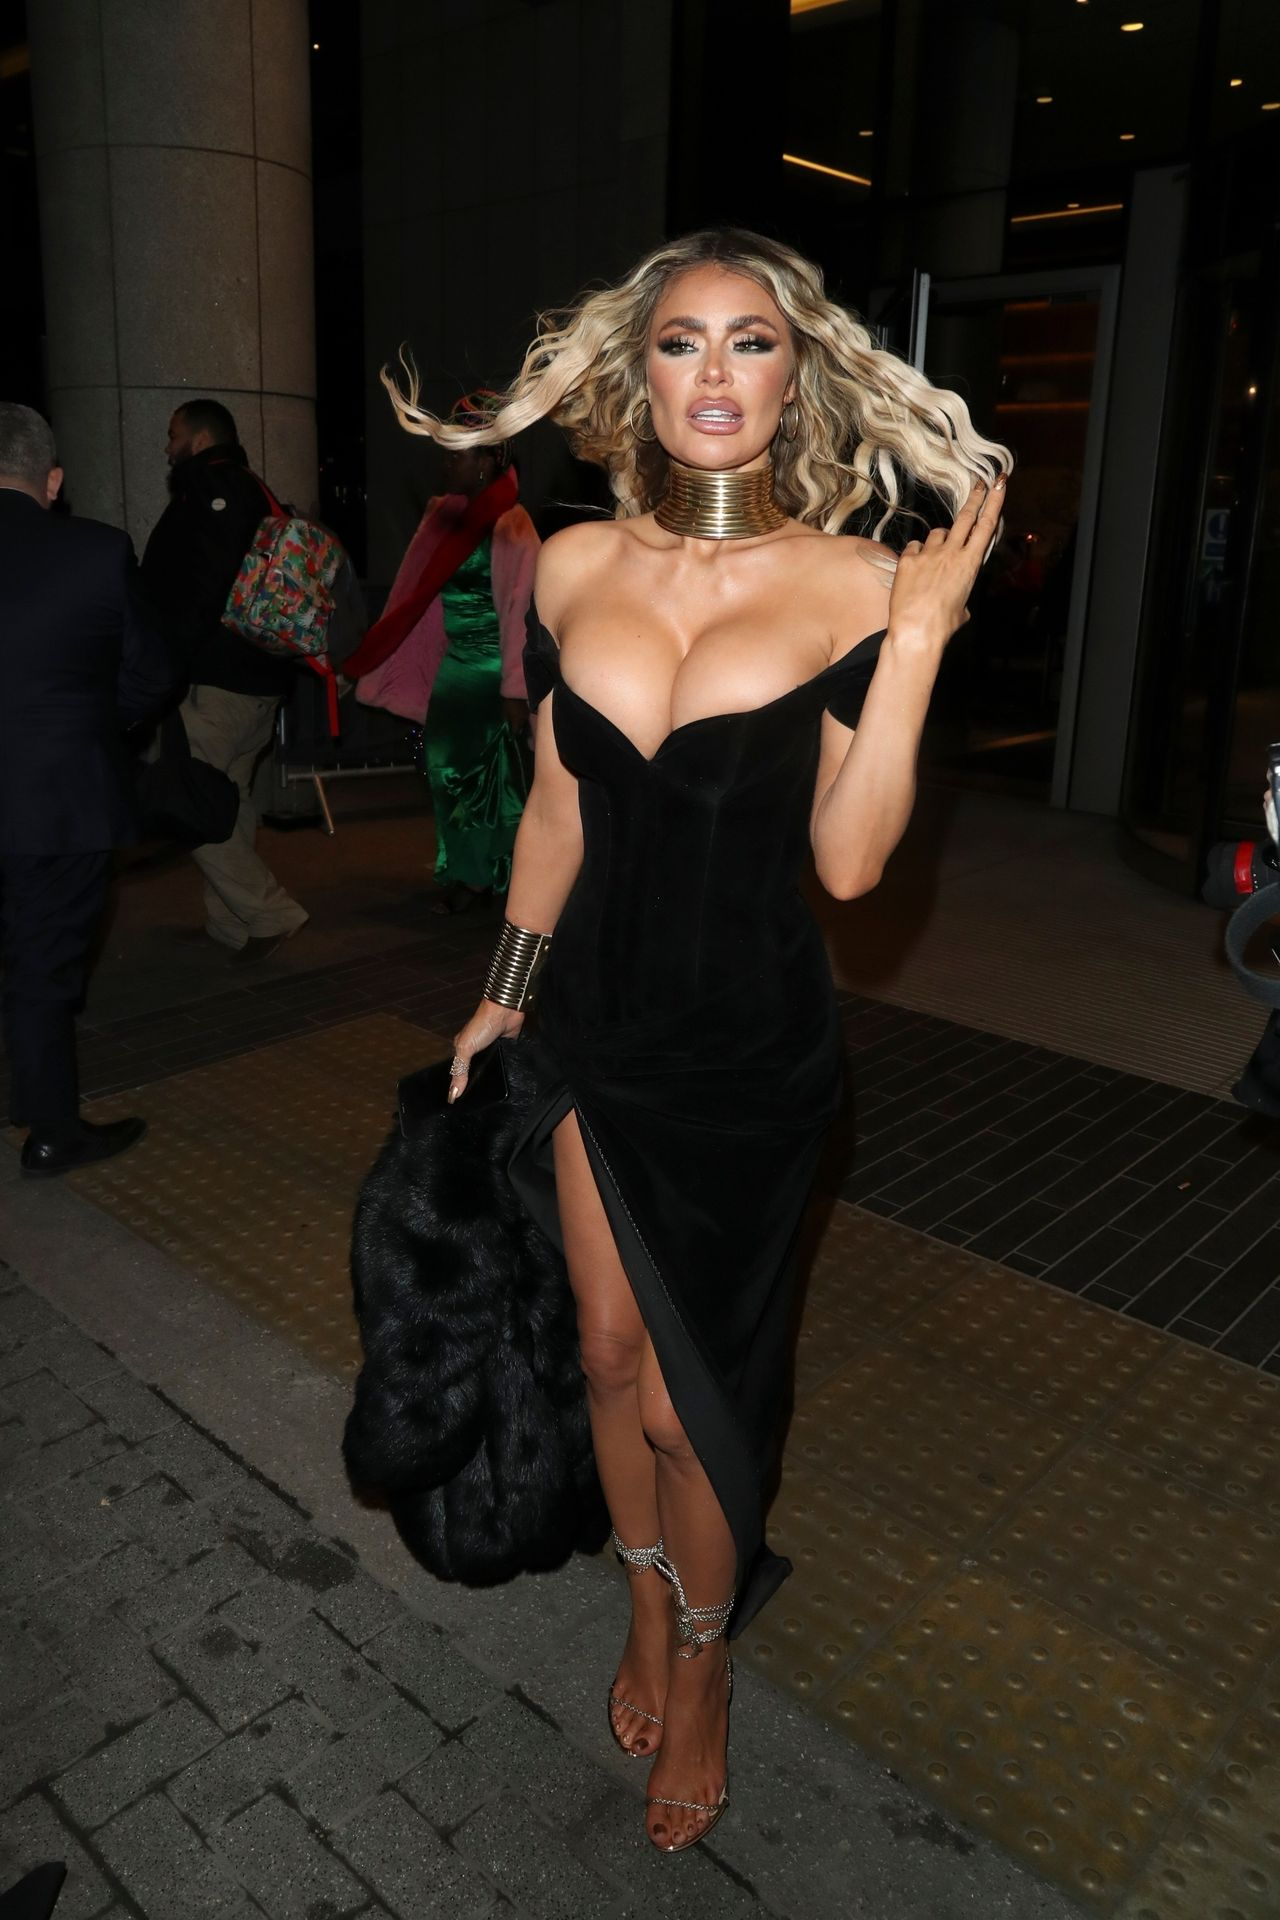 Chloe Sims Shows Off Her Boobs At The Nta Afterparty In London 0007